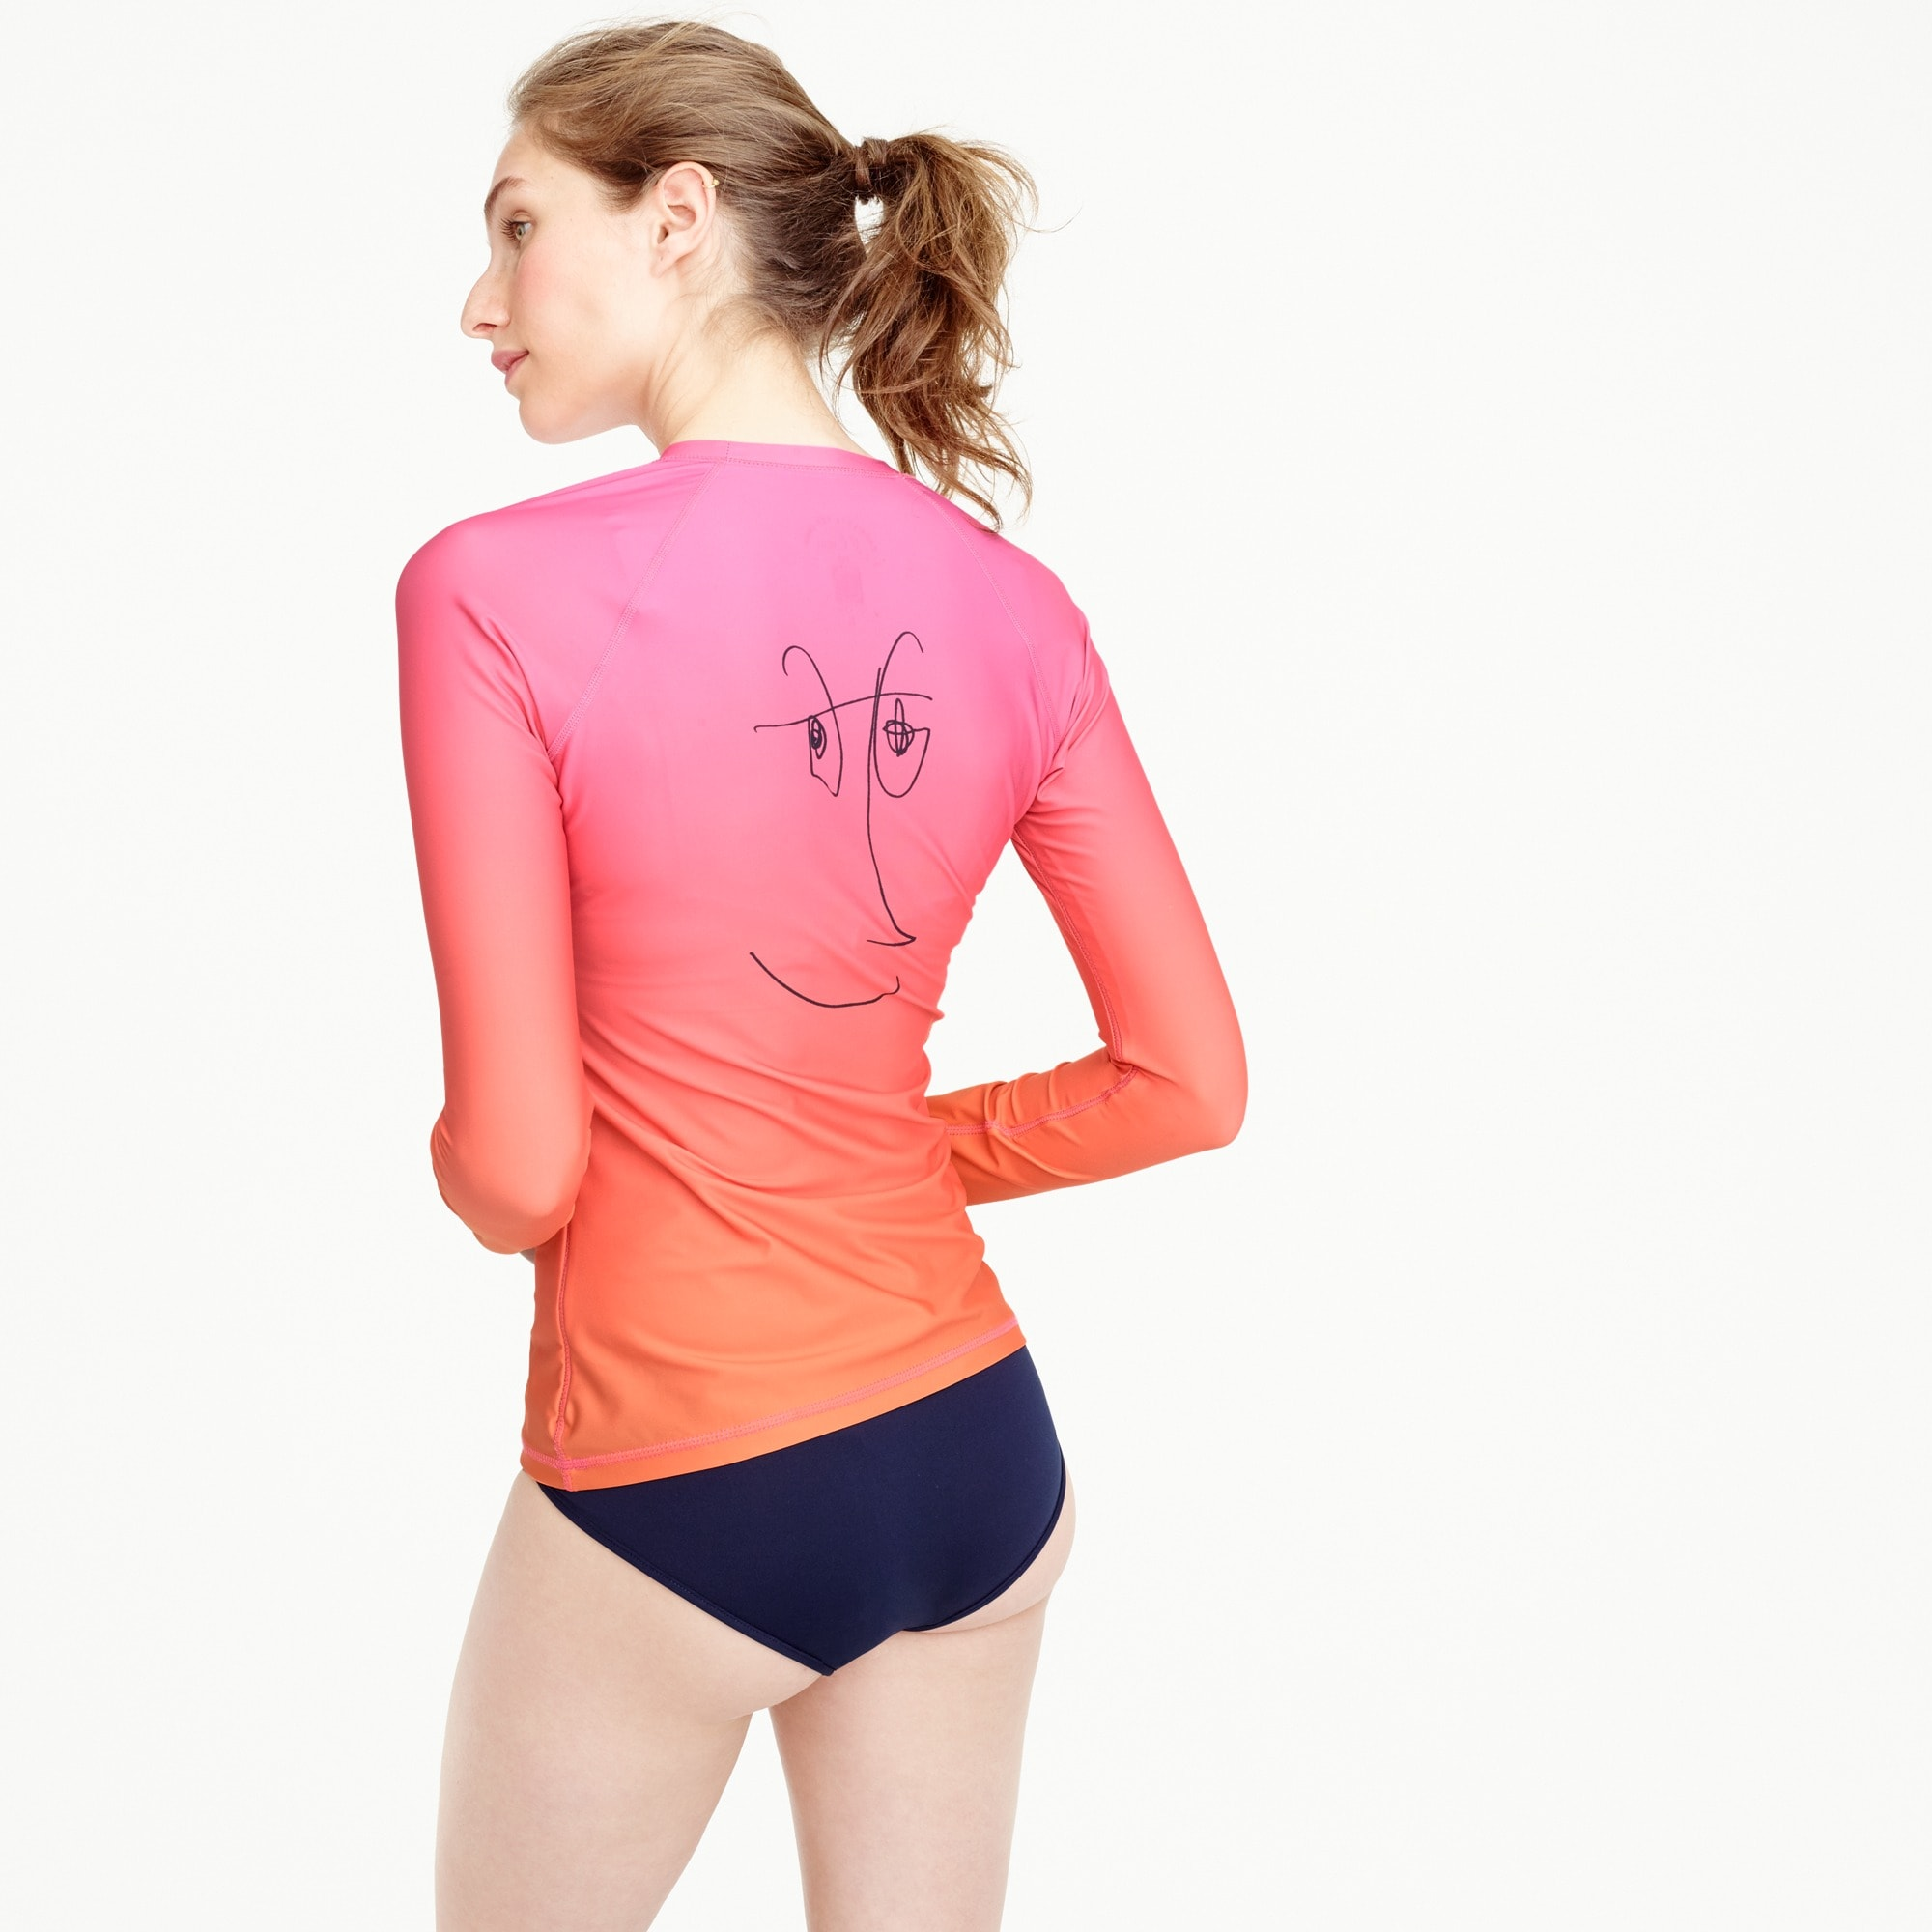 rob pruitt for j.crew rash guard in pink orange multi : women's swim